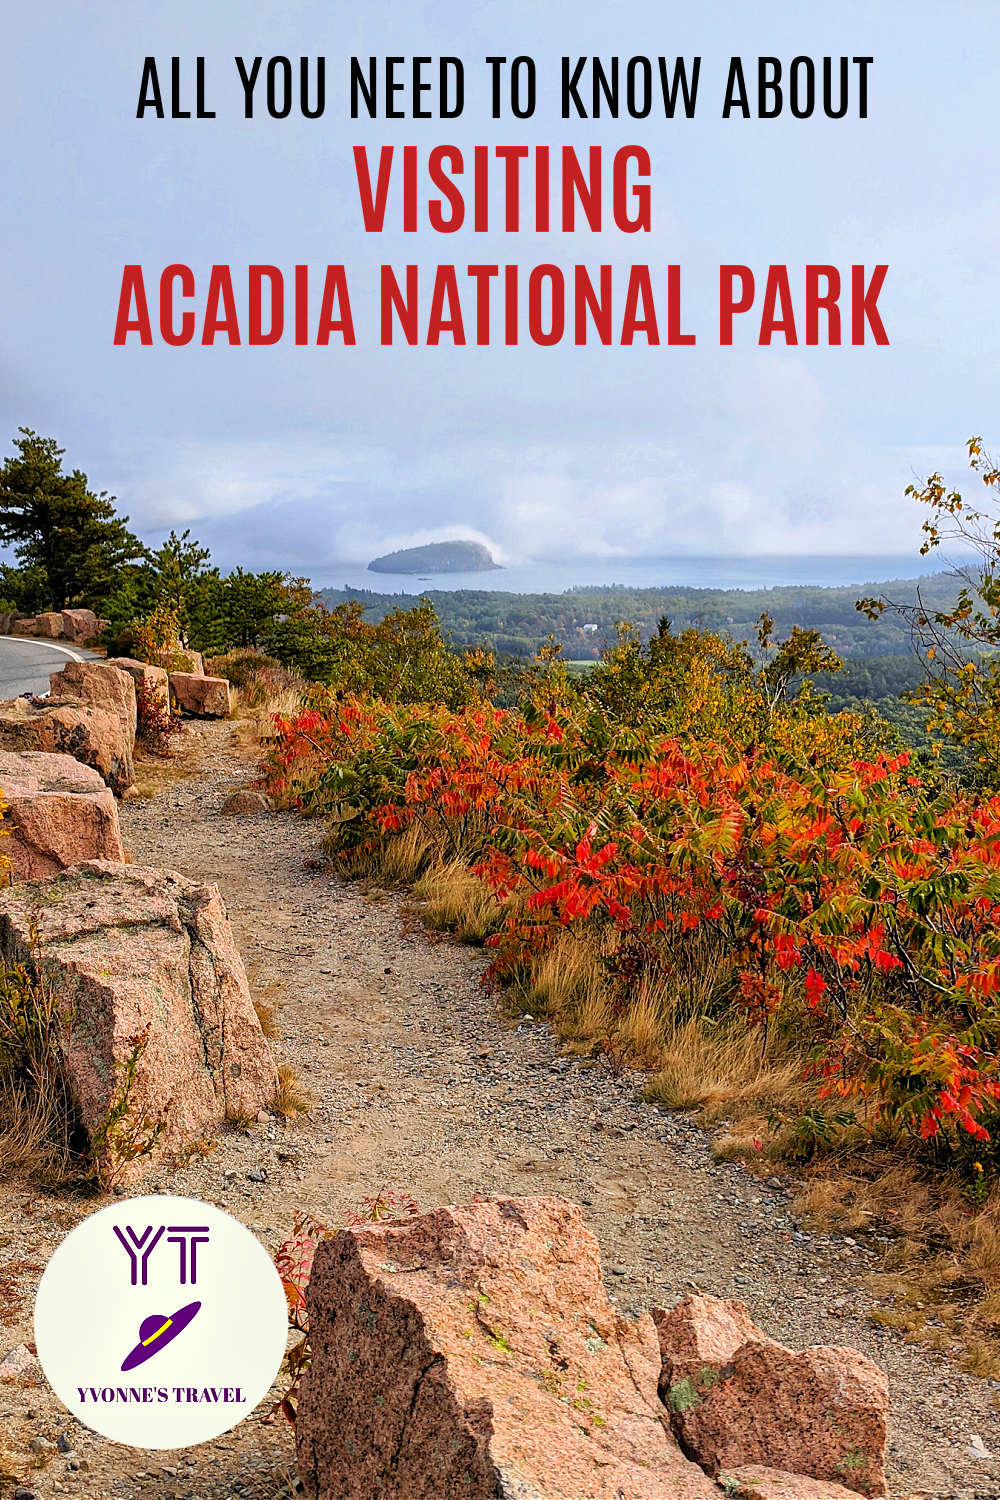 Acadia National Park is famous for its rugged shoreline, dramatic vistas, and recreational opportunities. Learn here how to visit it.